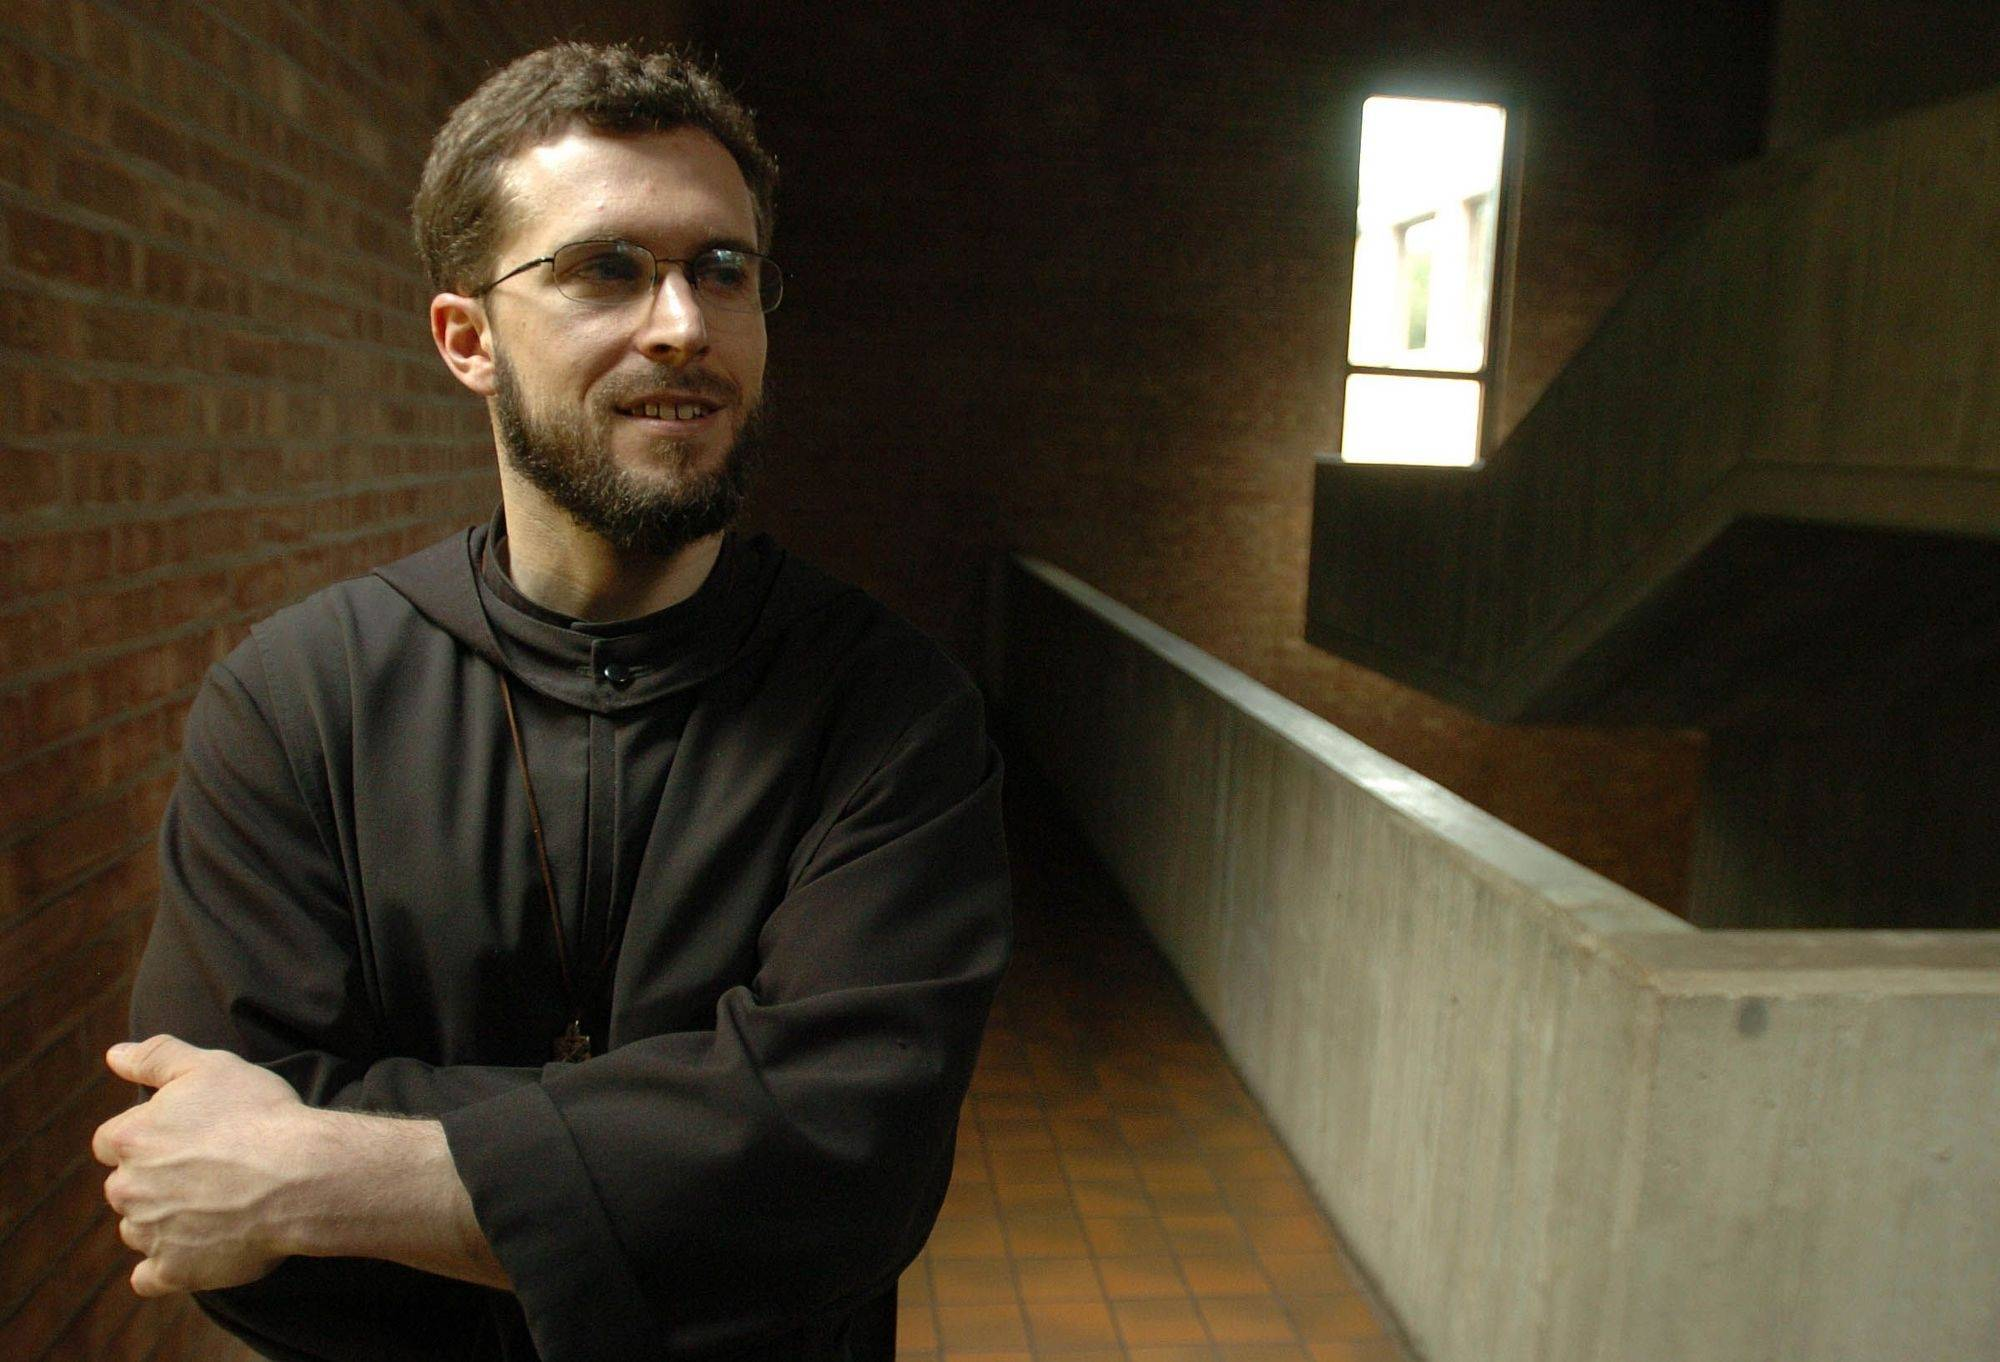 Austin Gregory Murphy was elected in June to become abbot of St. Procopius Abbey in Lisle. At age 36, he is the youngest member of the order and only the 10th abbot to head the community in its 125-year history.